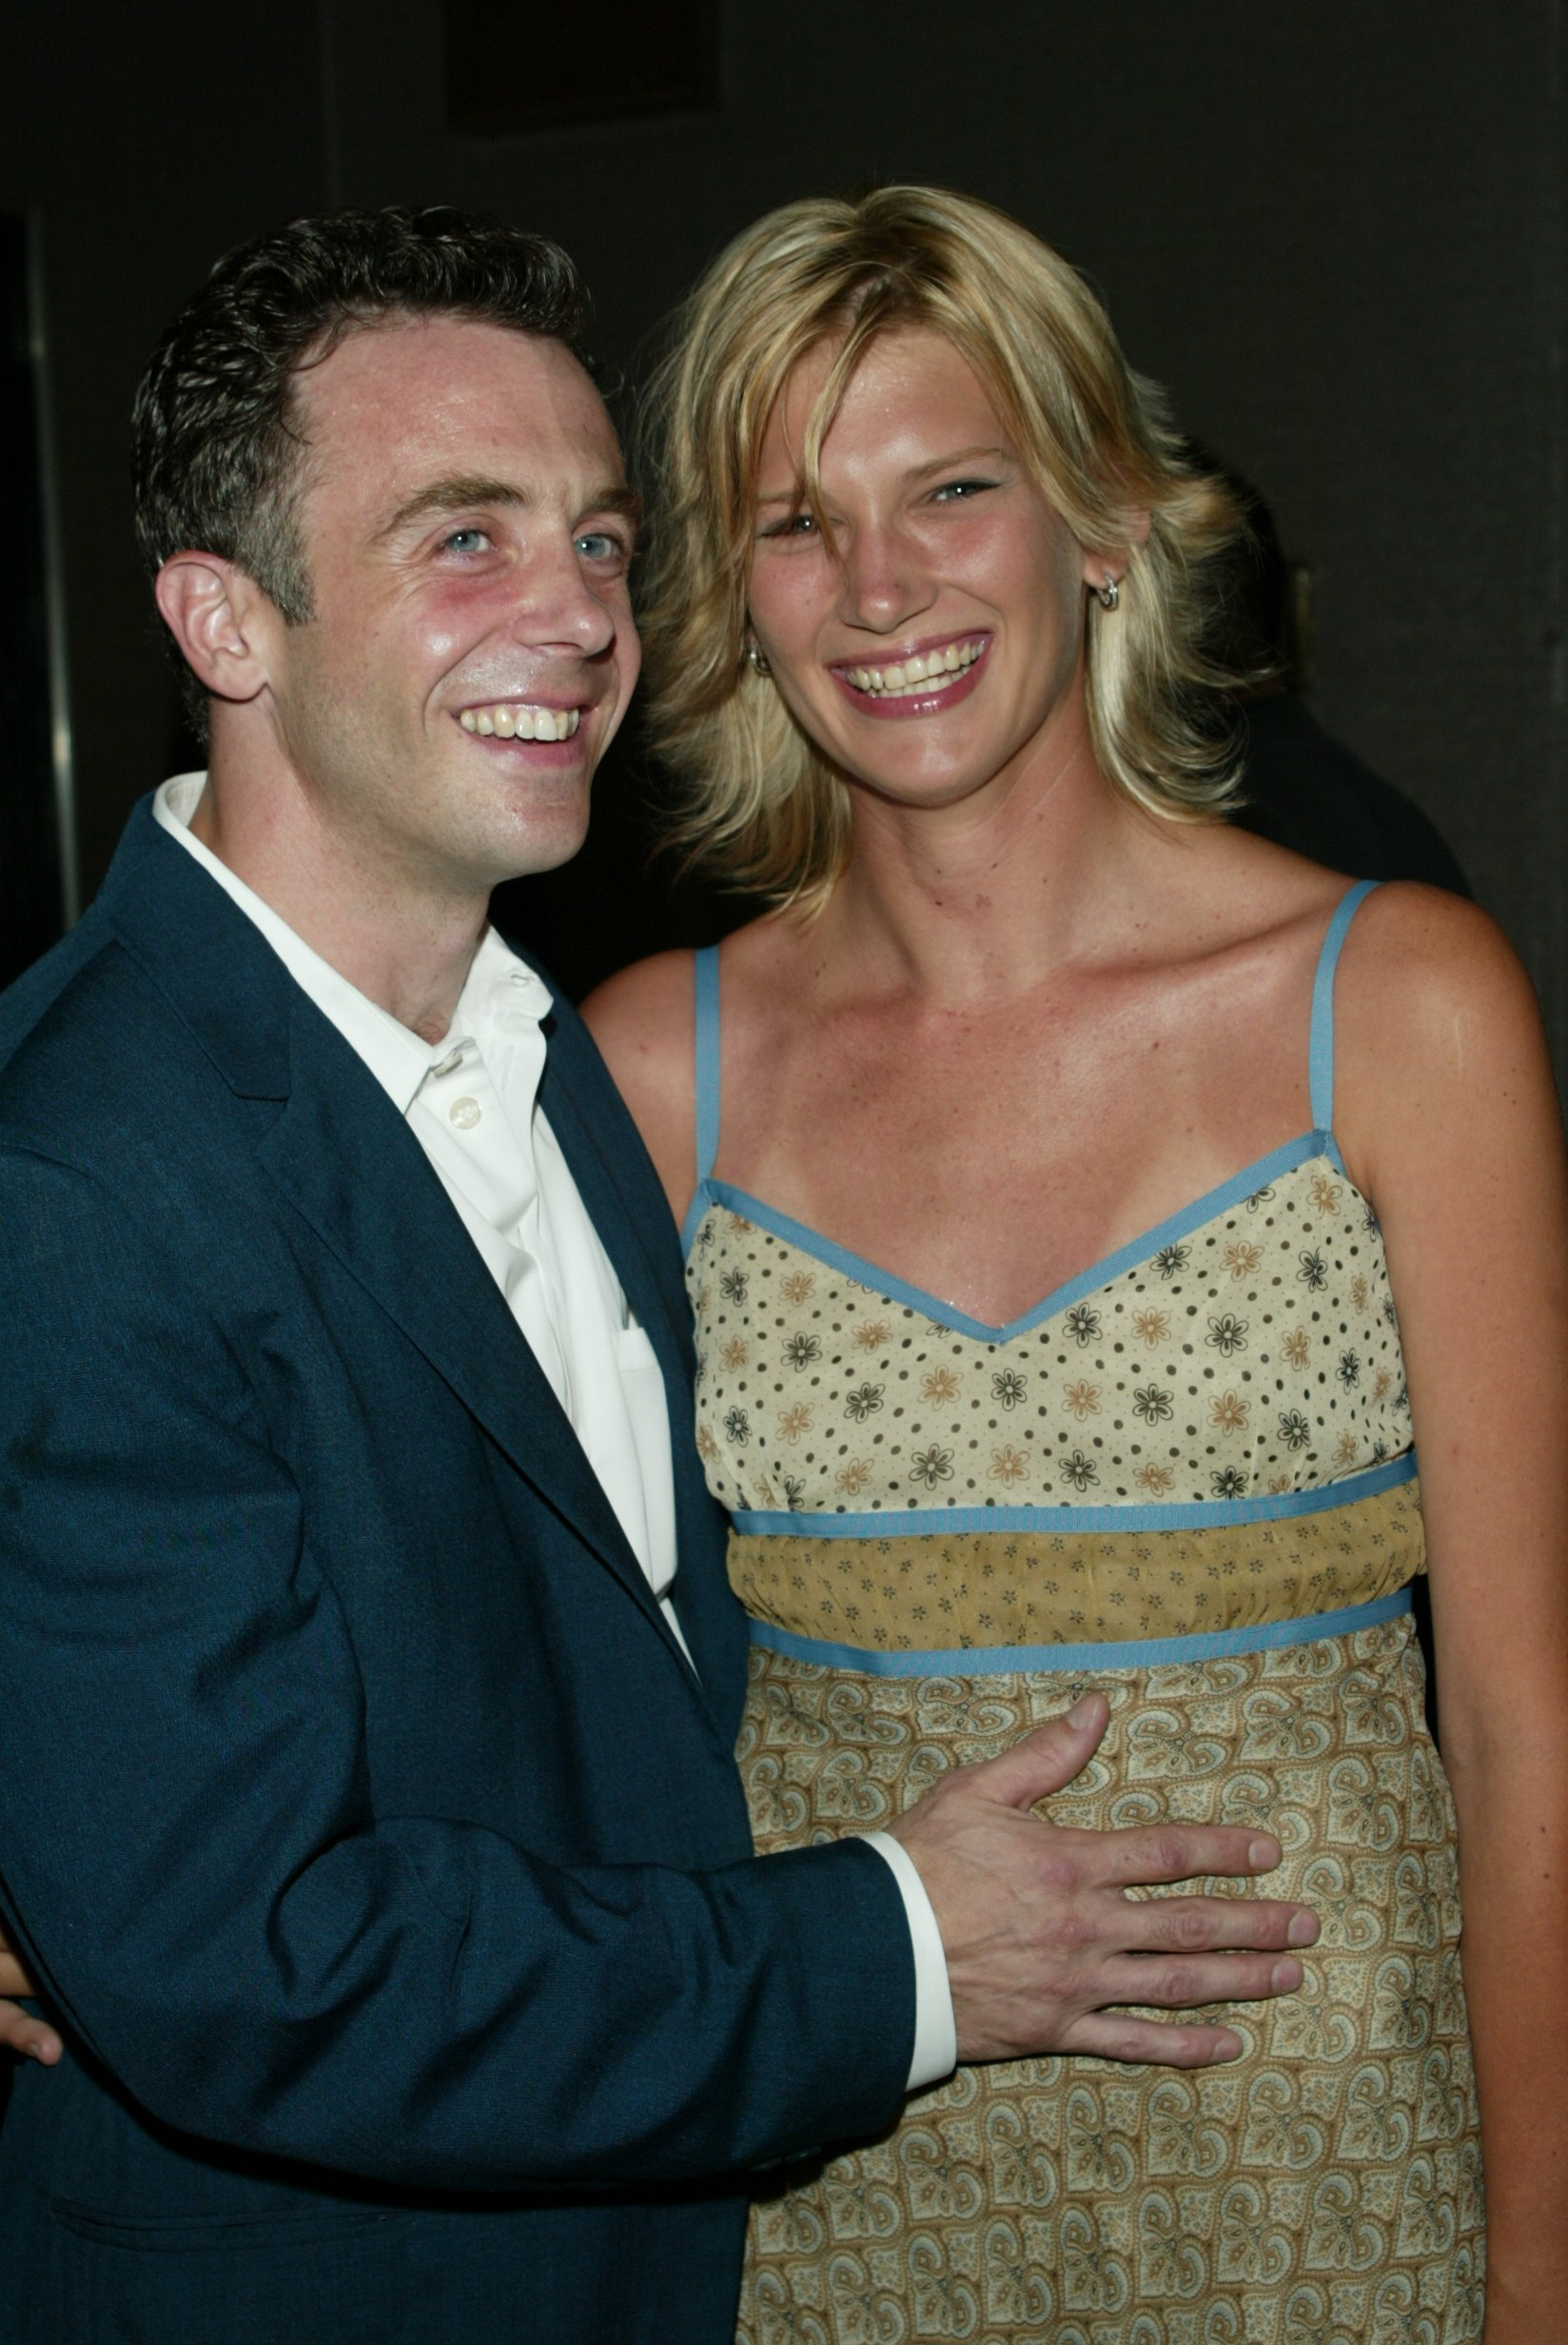 """David Eigenberg with girlfriend Chrysti Kotik arriving at the """"Tadpole"""" film premiere at Cinema II in New York City. July 15, 2002.   Source: Getty Images."""